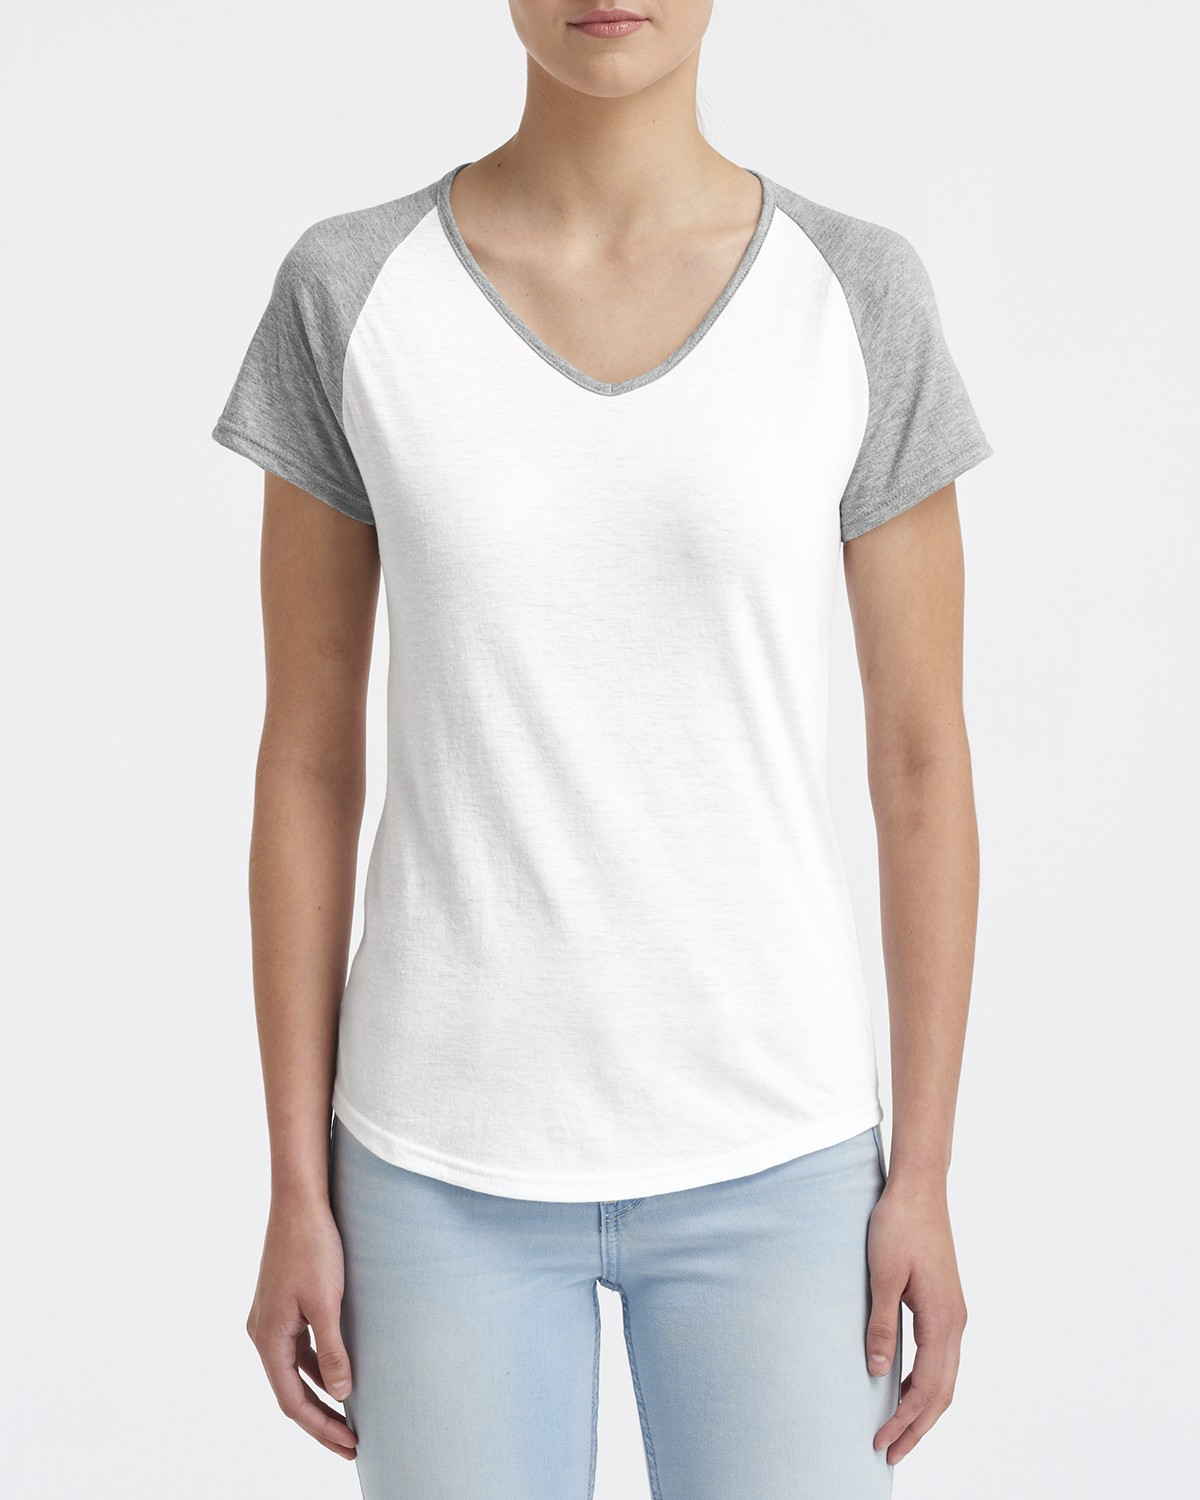 6770VL Anvil WHITE/HTHER GRY